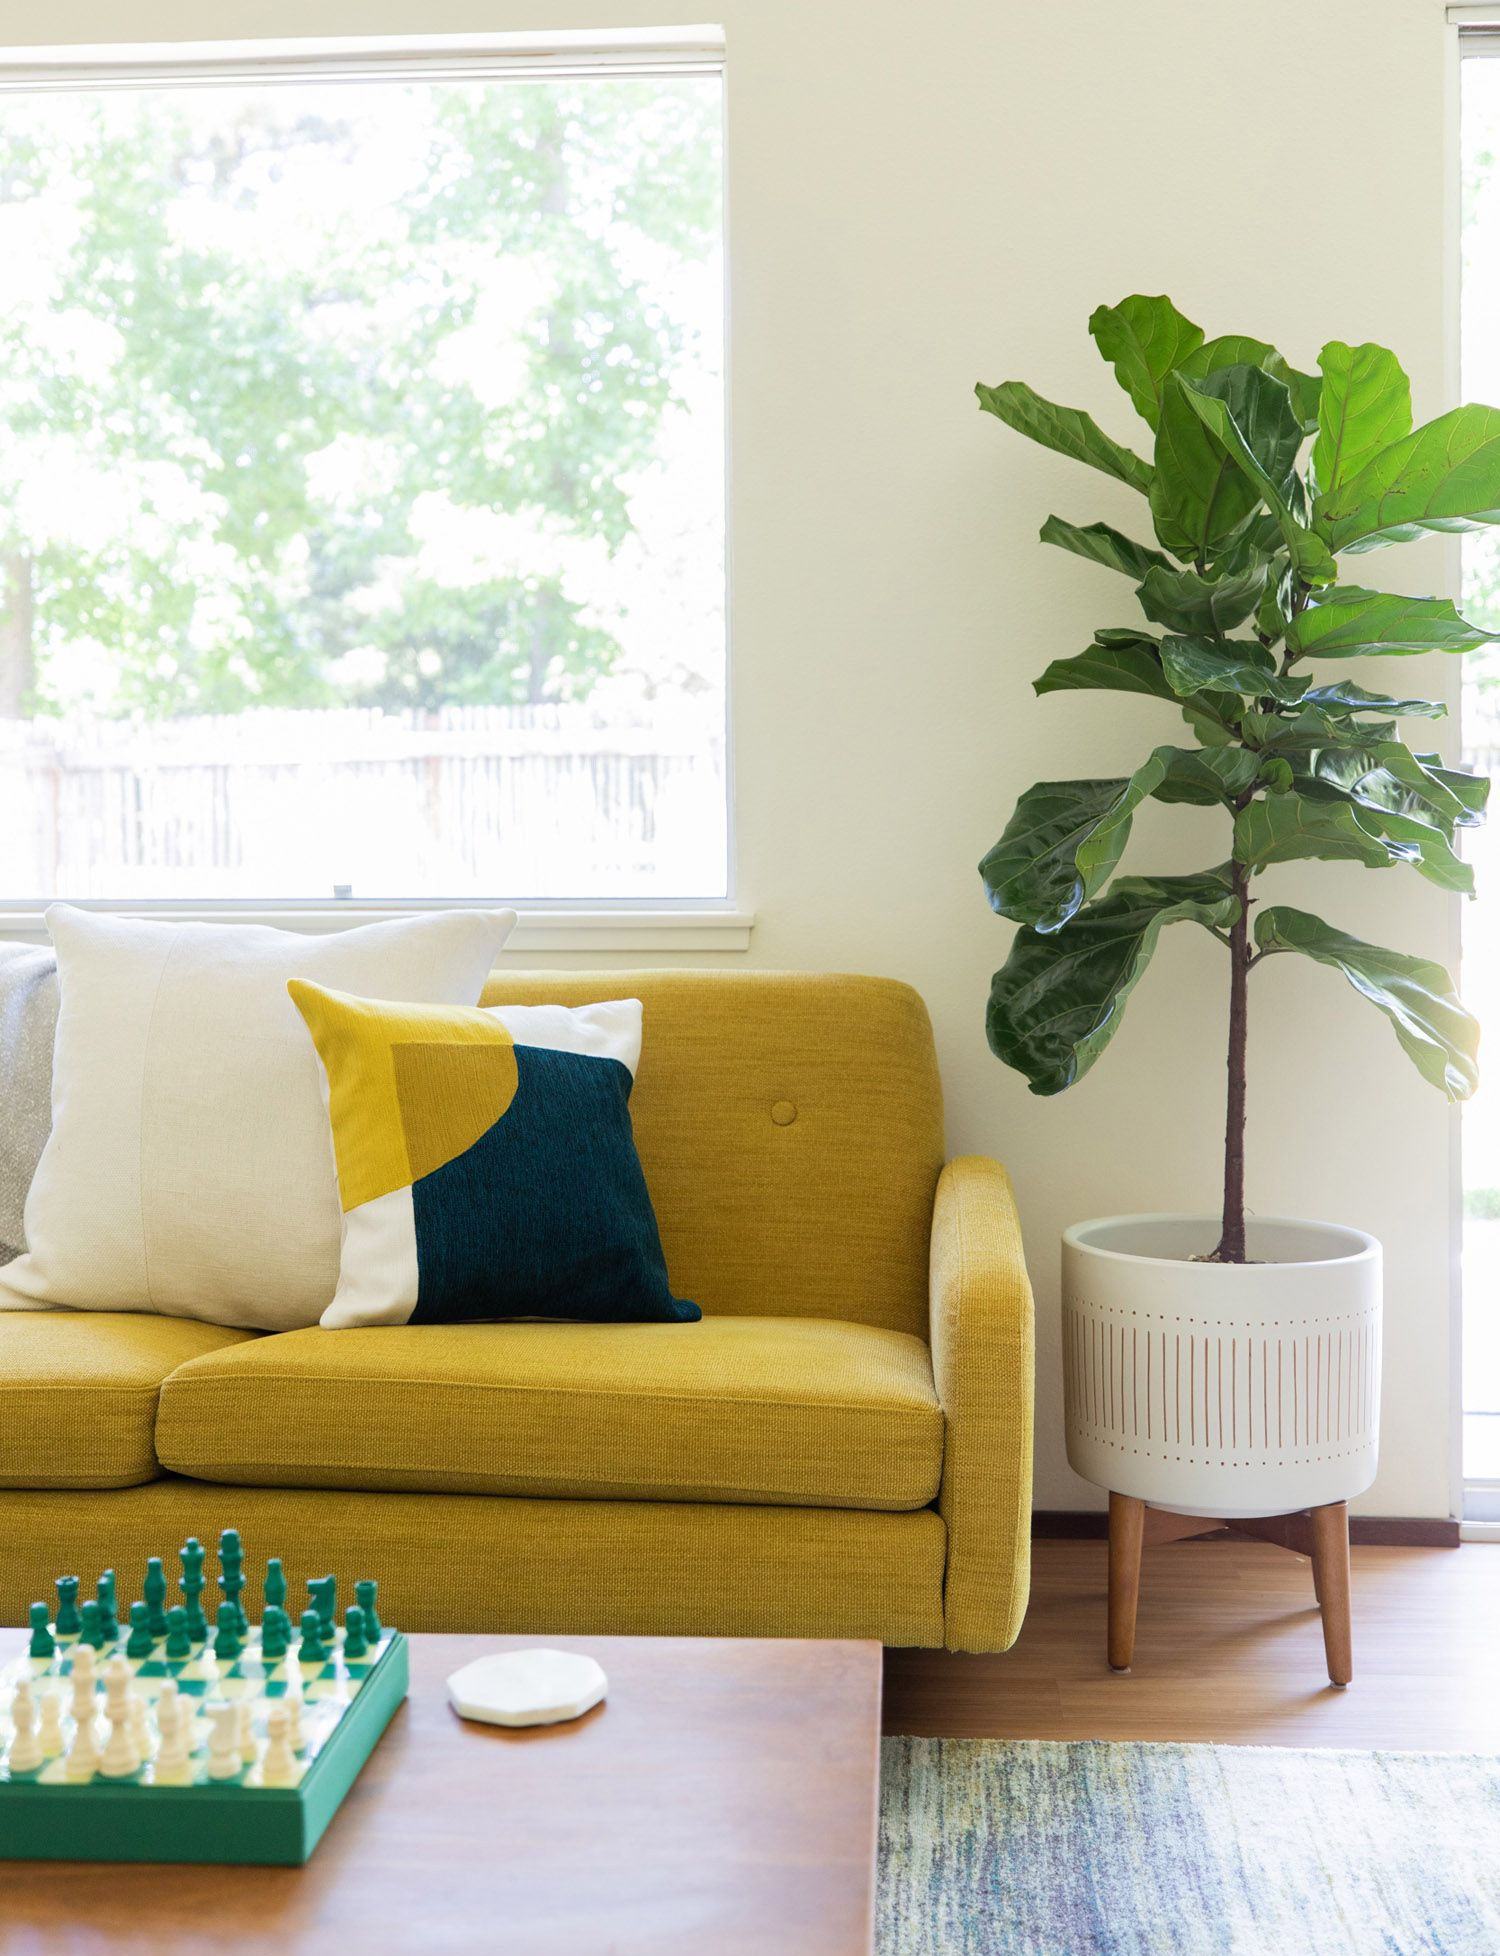 House Tour A Modern Coastal Oasis For Leesa Mattress Co Founder David Wolfe Front Main West Elm Furniture Mid Century Modern House Home